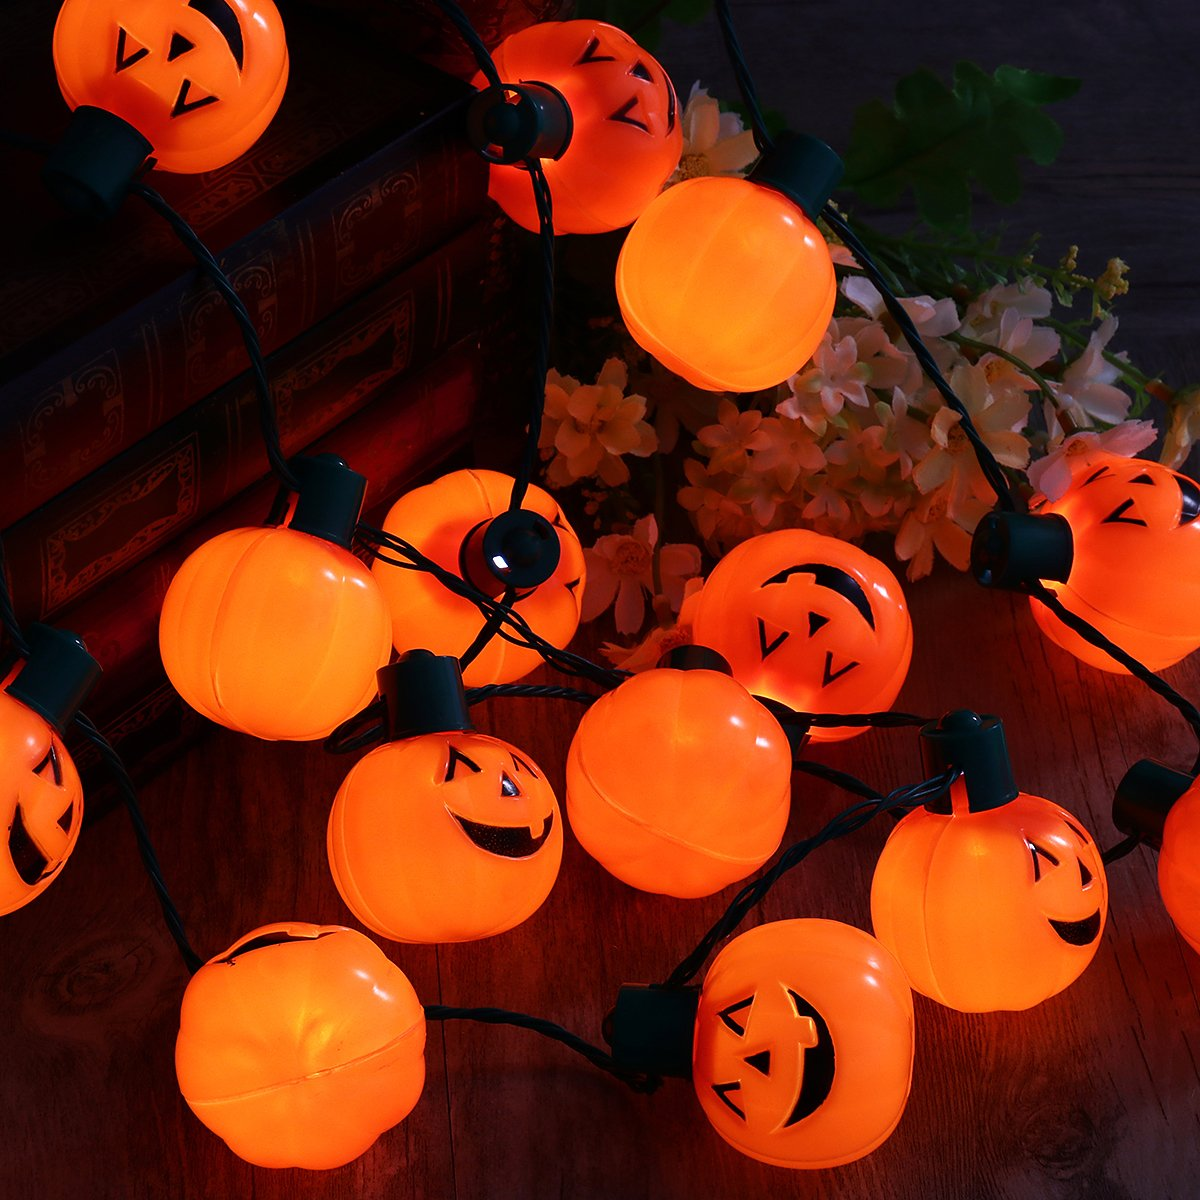 YUNLIGHTS Halloween String Lights 35-Inch Pumpkin Necklace with 6 Lighting Modes for Home Party, Halloween Decorations,2 Pack